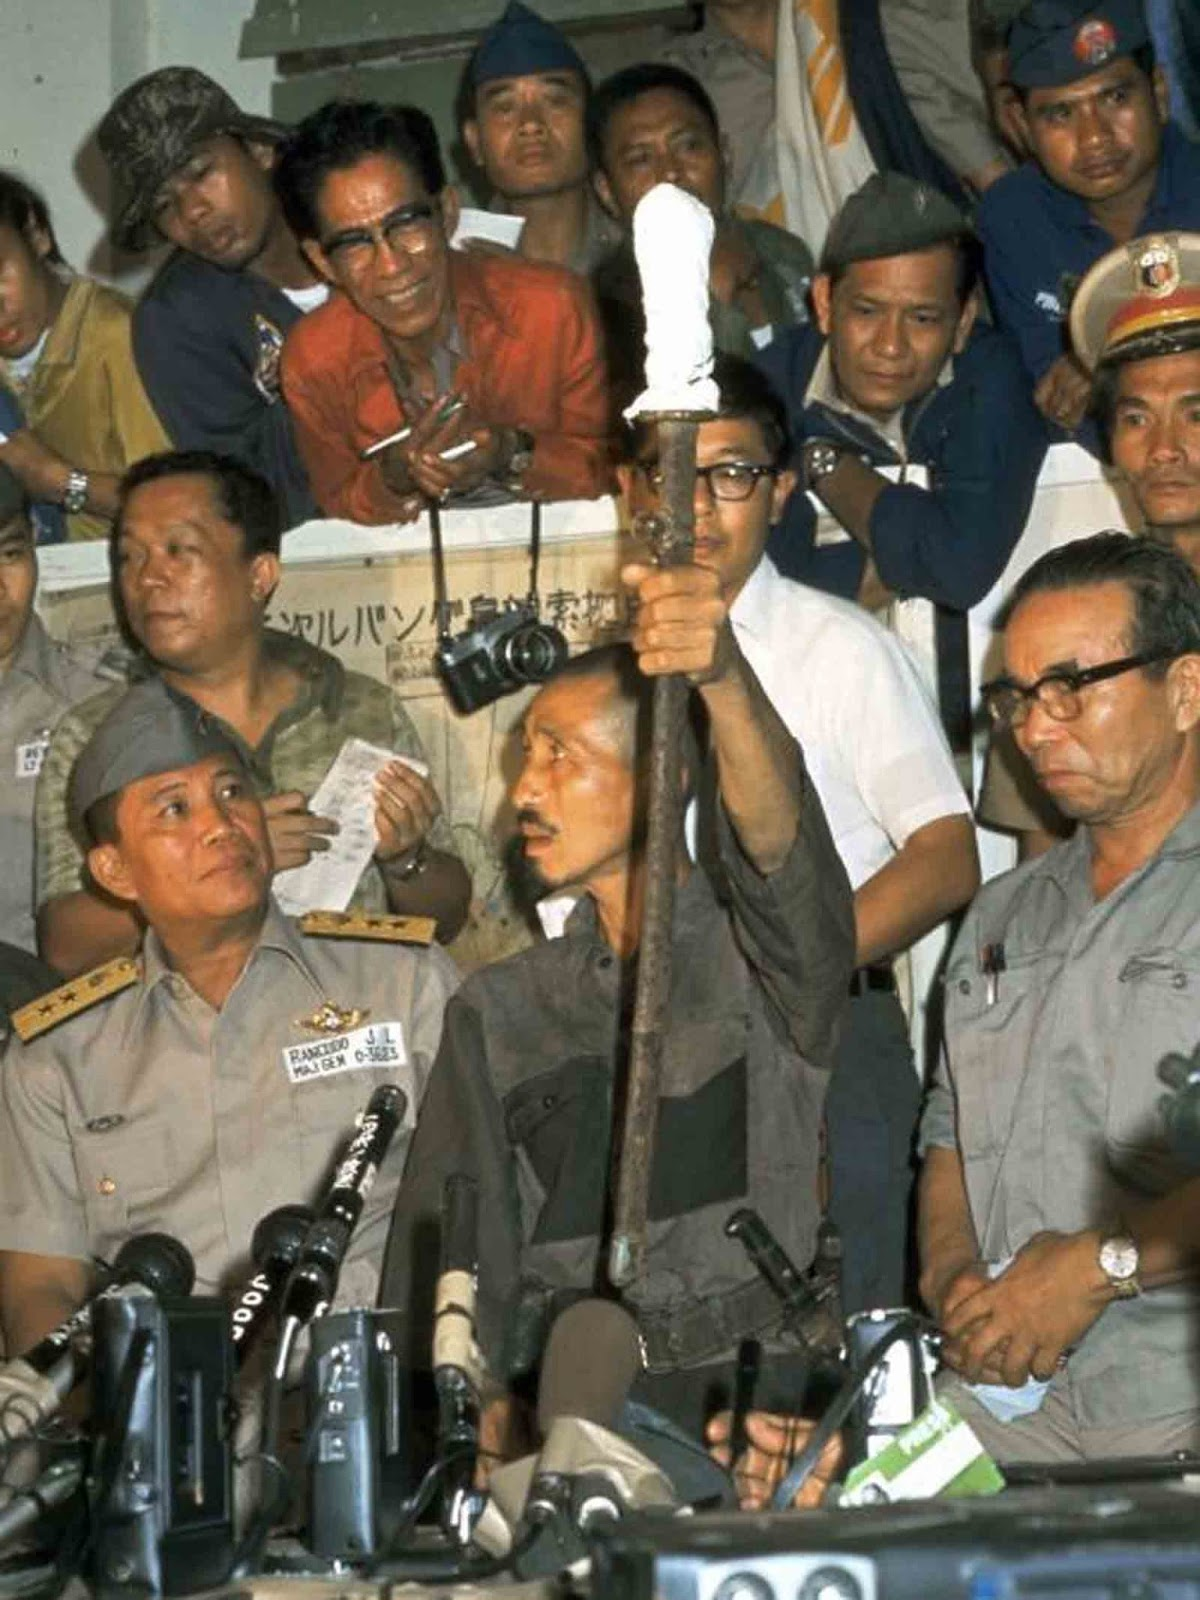 Hiroo Onoda shows his Japanese sword during a press conference on March 10, 1974 in Lubang, Philippines.